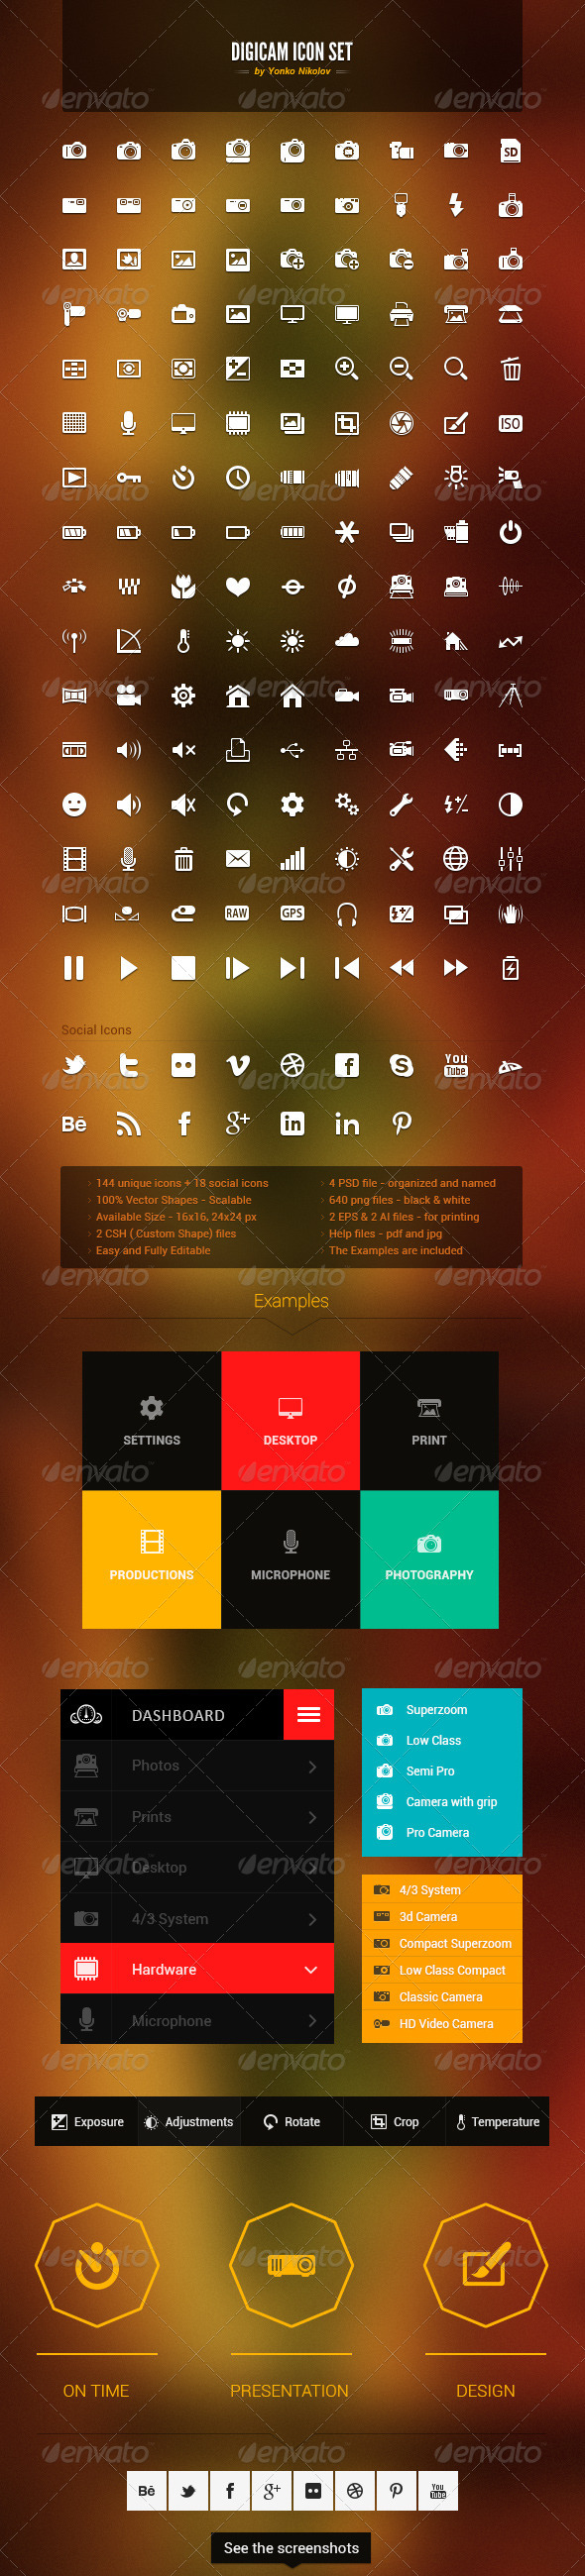 Digicam Vector Icon Set - Icons